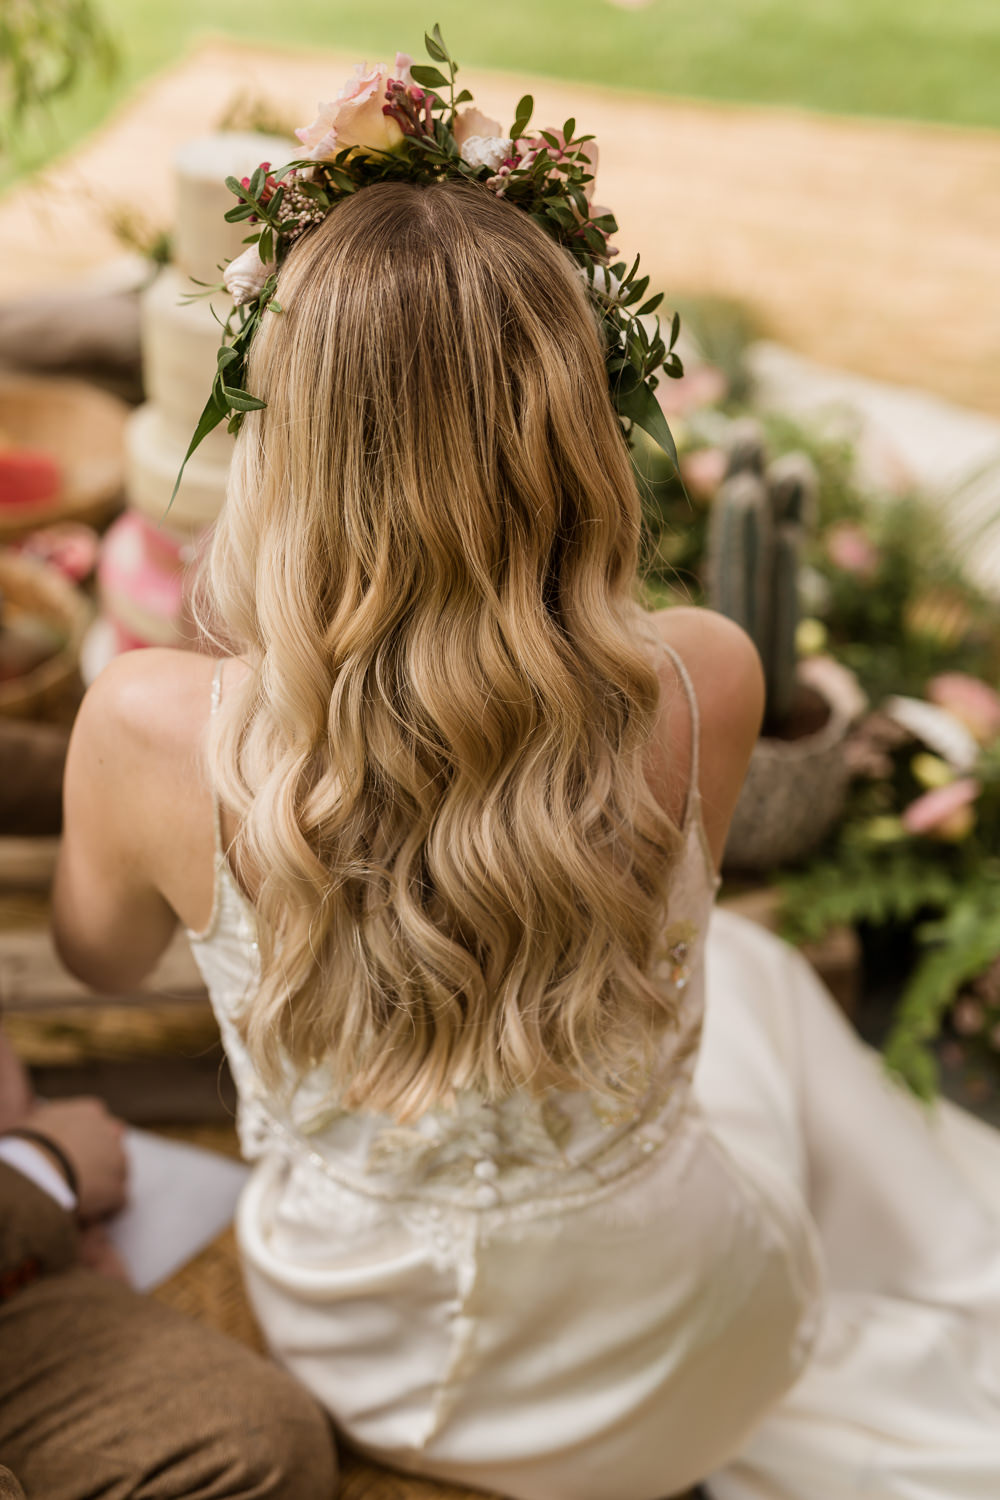 Bride Bridal Hair Waves Blonde Long Flowers Tropical Boho Countryside Wedding Ideas Sarah Brookes Photography